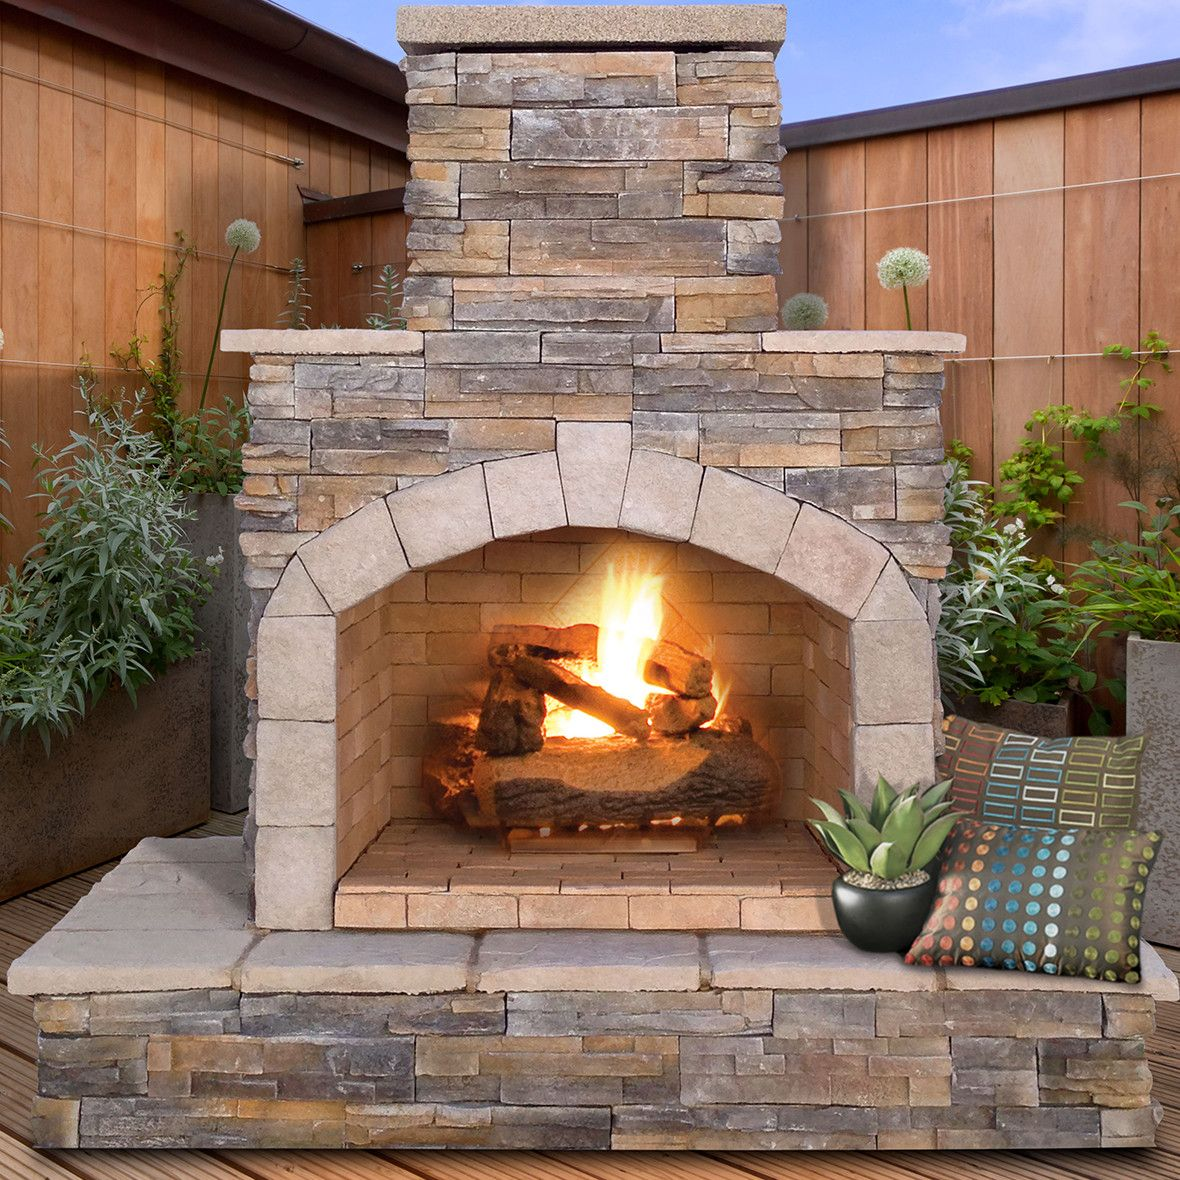 Natural Stone Propane Gas Outdoor Fireplace Outdoor Gas Fireplace Outdoor Fireplace Designs Natural Gas Outdoor Fireplace